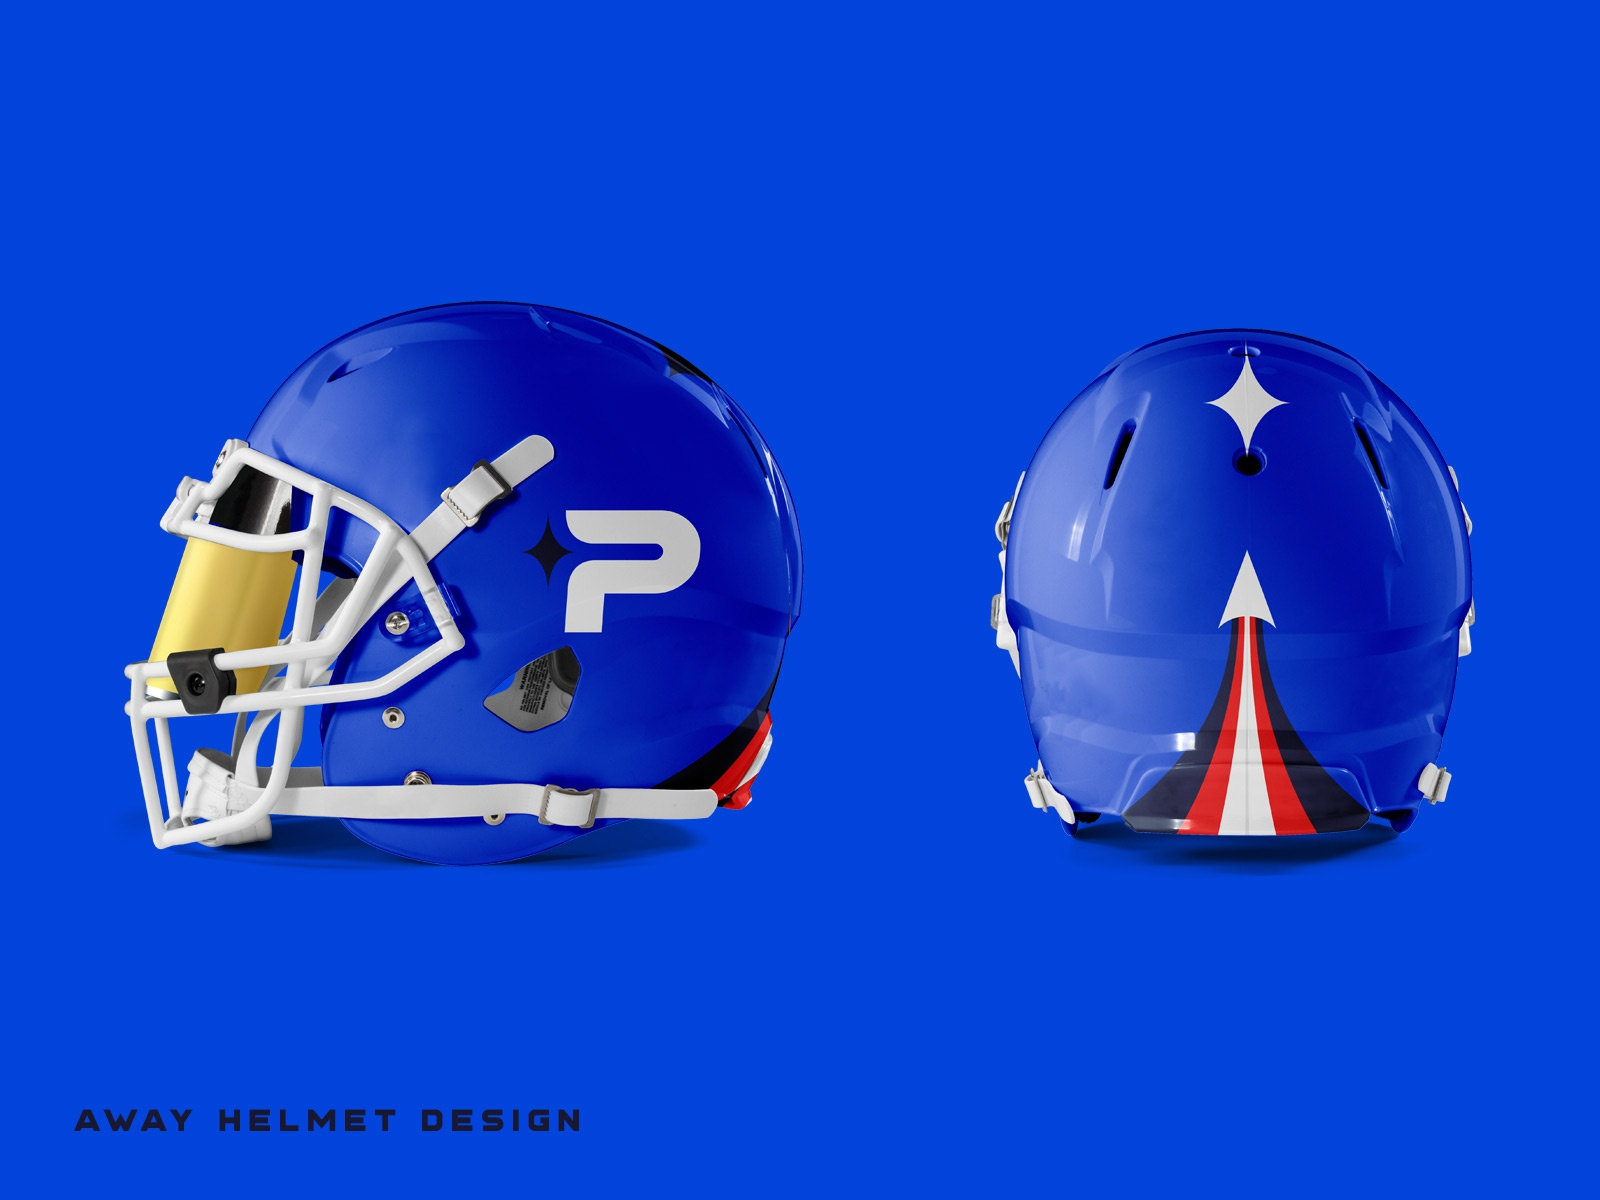 07 pioneers away helmets